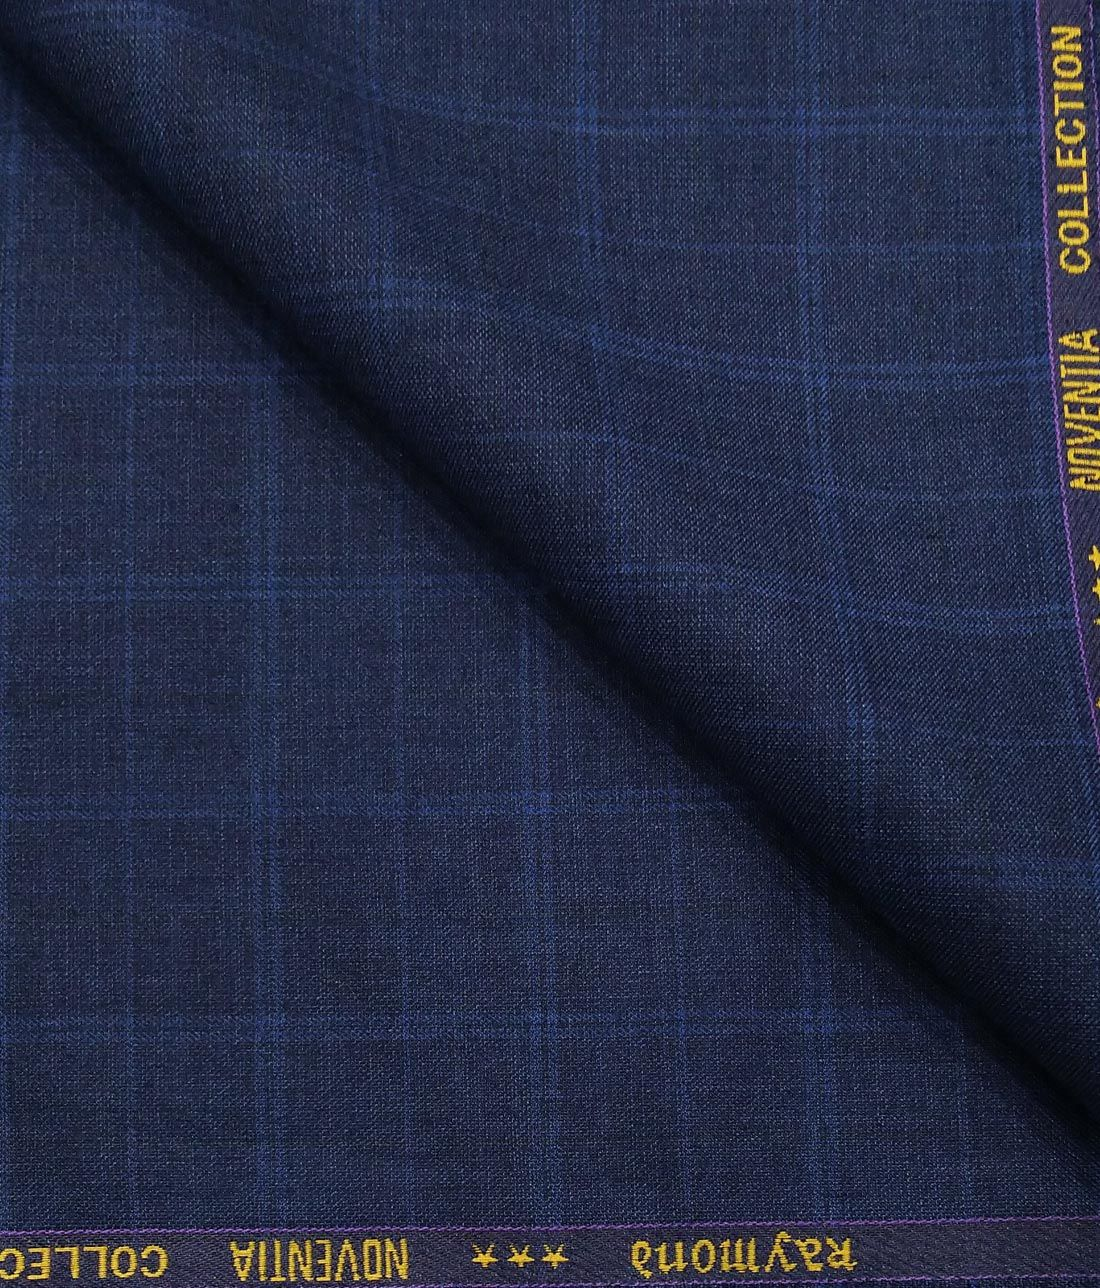 65f0085e7 Combo of Raymond Dark Blue Broad Checks Trouser Fabric With Exquisite White  Cotton Blend Structured Shirt Fabric (Unstitched)